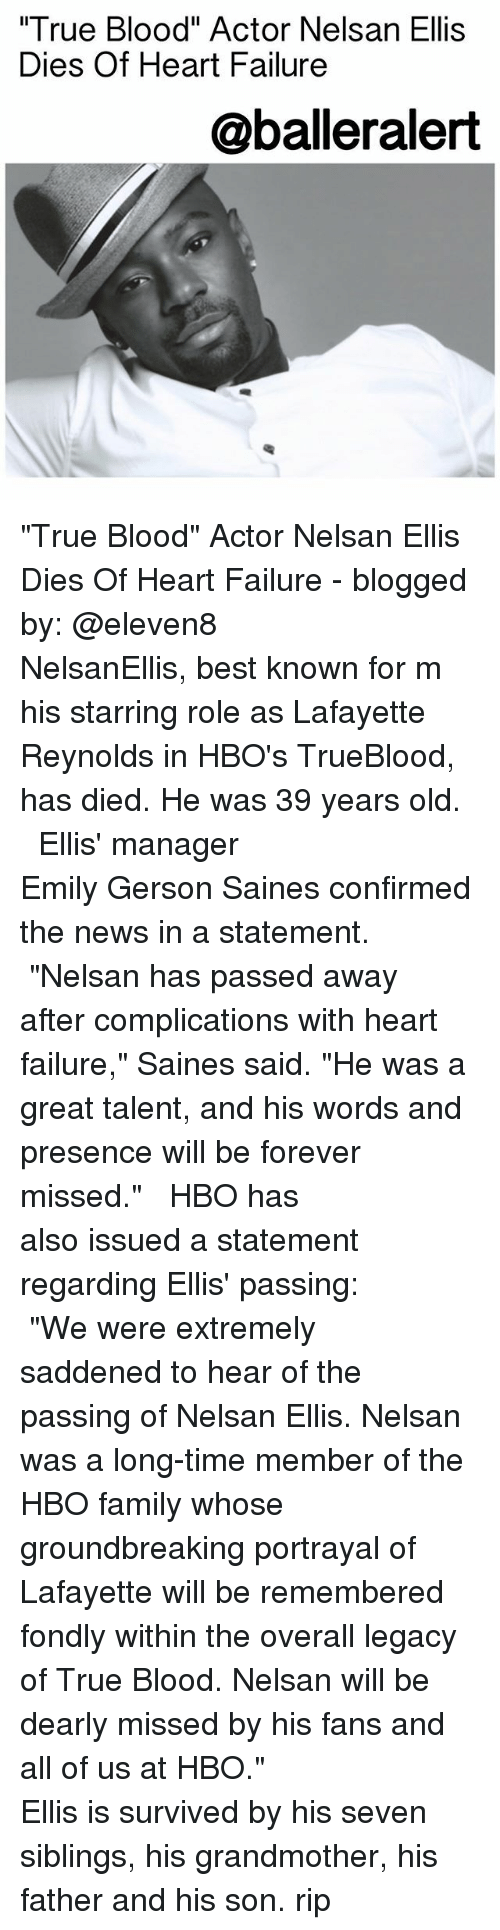 """Family, Hbo, and Memes: True Blood"""" Actor Nelsan Ellis  Dies Of Heart Failure  @balleralert """"True Blood"""" Actor Nelsan Ellis Dies Of Heart Failure - blogged by: @eleven8 ⠀⠀⠀⠀⠀⠀⠀⠀⠀ ⠀⠀⠀⠀⠀⠀⠀⠀⠀ NelsanEllis, best known for m his starring role as Lafayette Reynolds in HBO's TrueBlood, has died. He was 39 years old. ⠀⠀⠀⠀⠀⠀⠀⠀⠀ ⠀⠀⠀⠀⠀⠀⠀⠀⠀ Ellis' manager Emily Gerson Saines confirmed the news in a statement. ⠀⠀⠀⠀⠀⠀⠀⠀⠀ ⠀⠀⠀⠀⠀⠀⠀⠀⠀ """"Nelsan has passed away after complications with heart failure,"""" Saines said. """"He was a great talent, and his words and presence will be forever missed."""" ⠀⠀⠀⠀⠀⠀⠀⠀⠀ ⠀⠀⠀⠀⠀⠀⠀⠀⠀ HBO has also issued a statement regarding Ellis' passing: ⠀⠀⠀⠀⠀⠀⠀⠀⠀ ⠀⠀⠀⠀⠀⠀⠀⠀⠀ """"We were extremely saddened to hear of the passing of Nelsan Ellis. Nelsan was a long-time member of the HBO family whose groundbreaking portrayal of Lafayette will be remembered fondly within the overall legacy of True Blood. Nelsan will be dearly missed by his fans and all of us at HBO."""" ⠀⠀⠀⠀⠀⠀⠀⠀⠀ ⠀⠀⠀⠀⠀⠀⠀⠀⠀ Ellis is survived by his seven siblings, his grandmother, his father and his son. rip"""